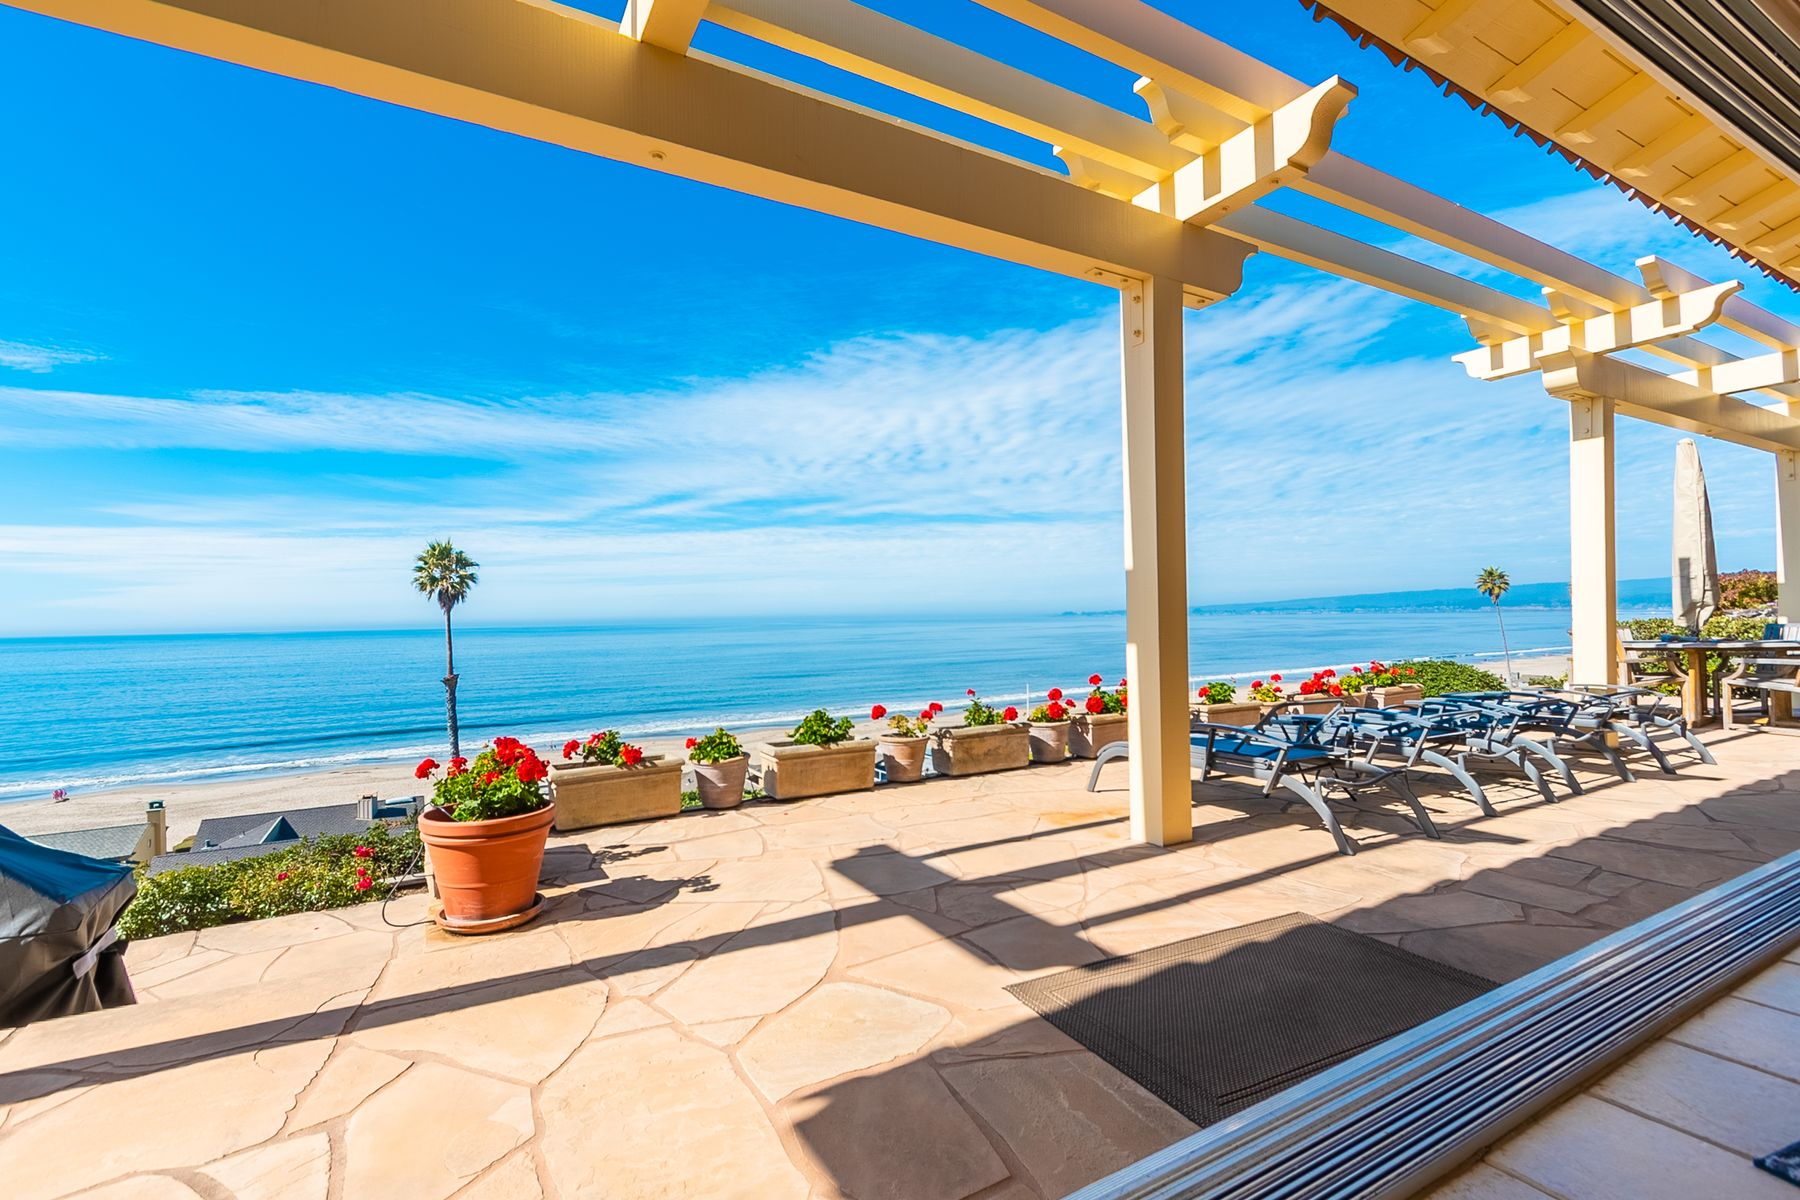 Single Family Homes for Sale at Stunning Ocean View Palace by the Sea 135 Via Concha Aptos, California 95003 United States